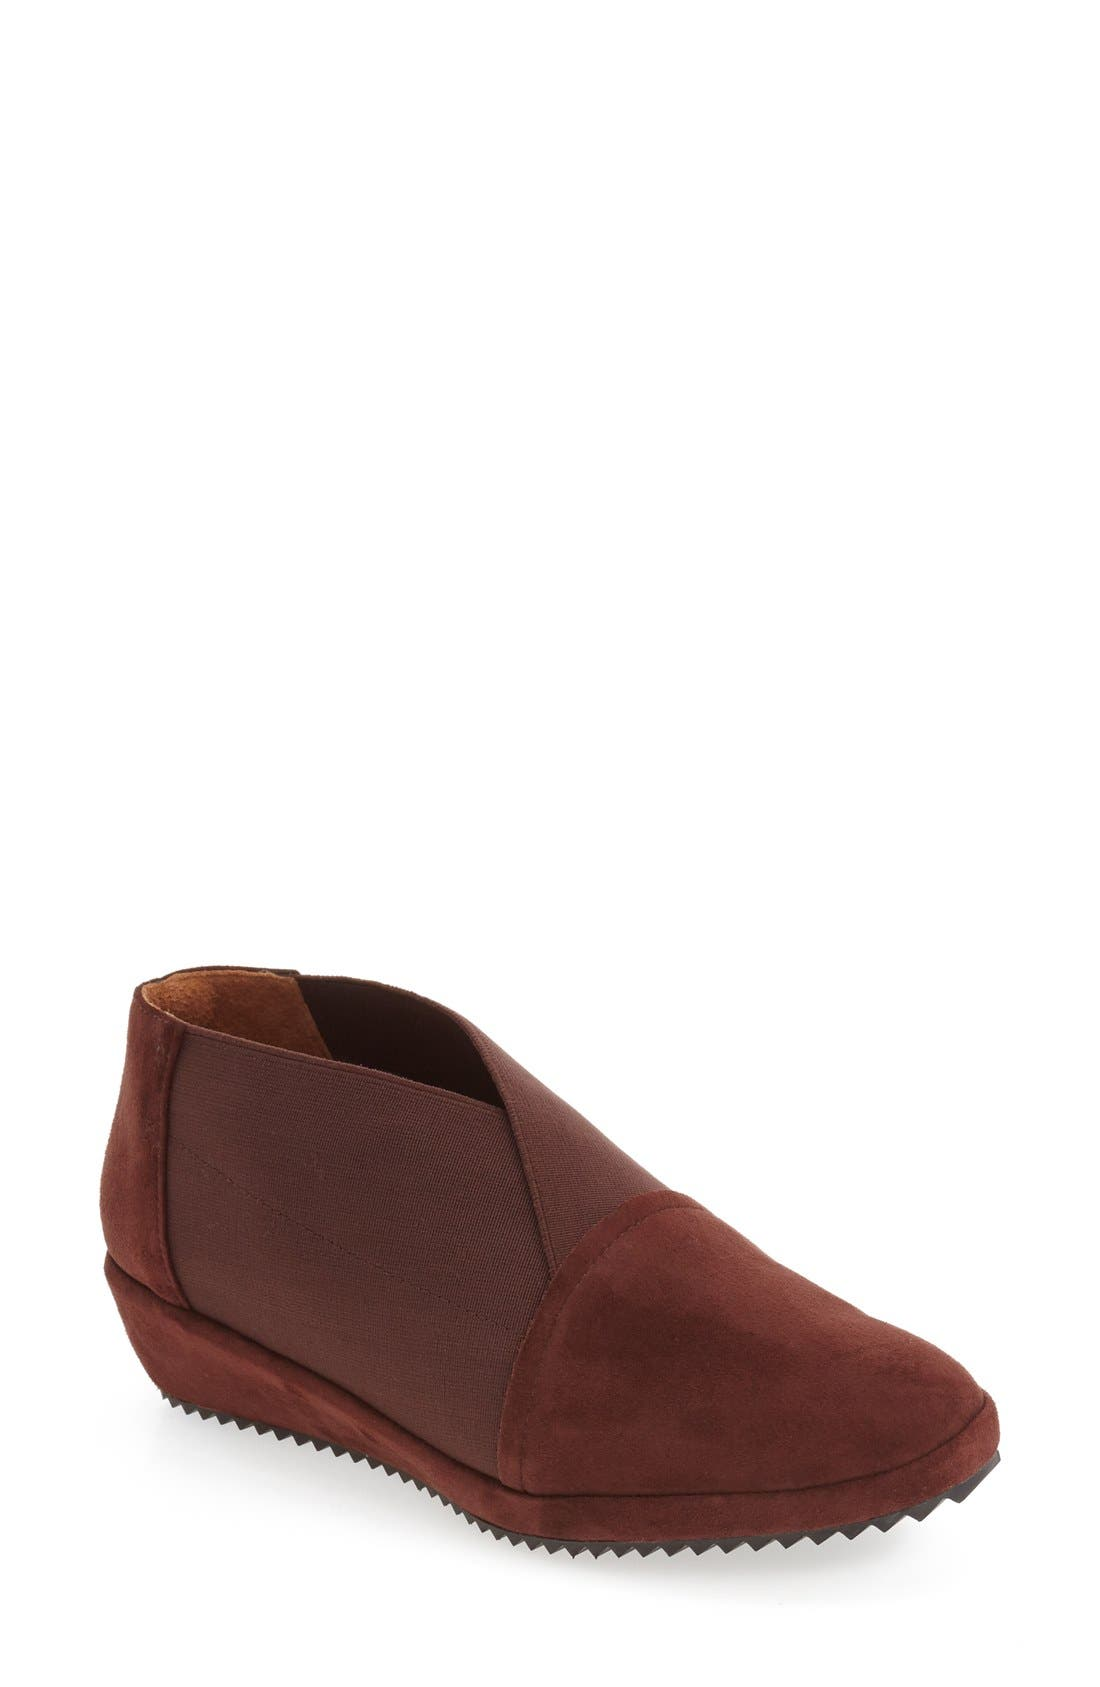 LAMOUR DES PIEDS Bowden Slip-On Wedge